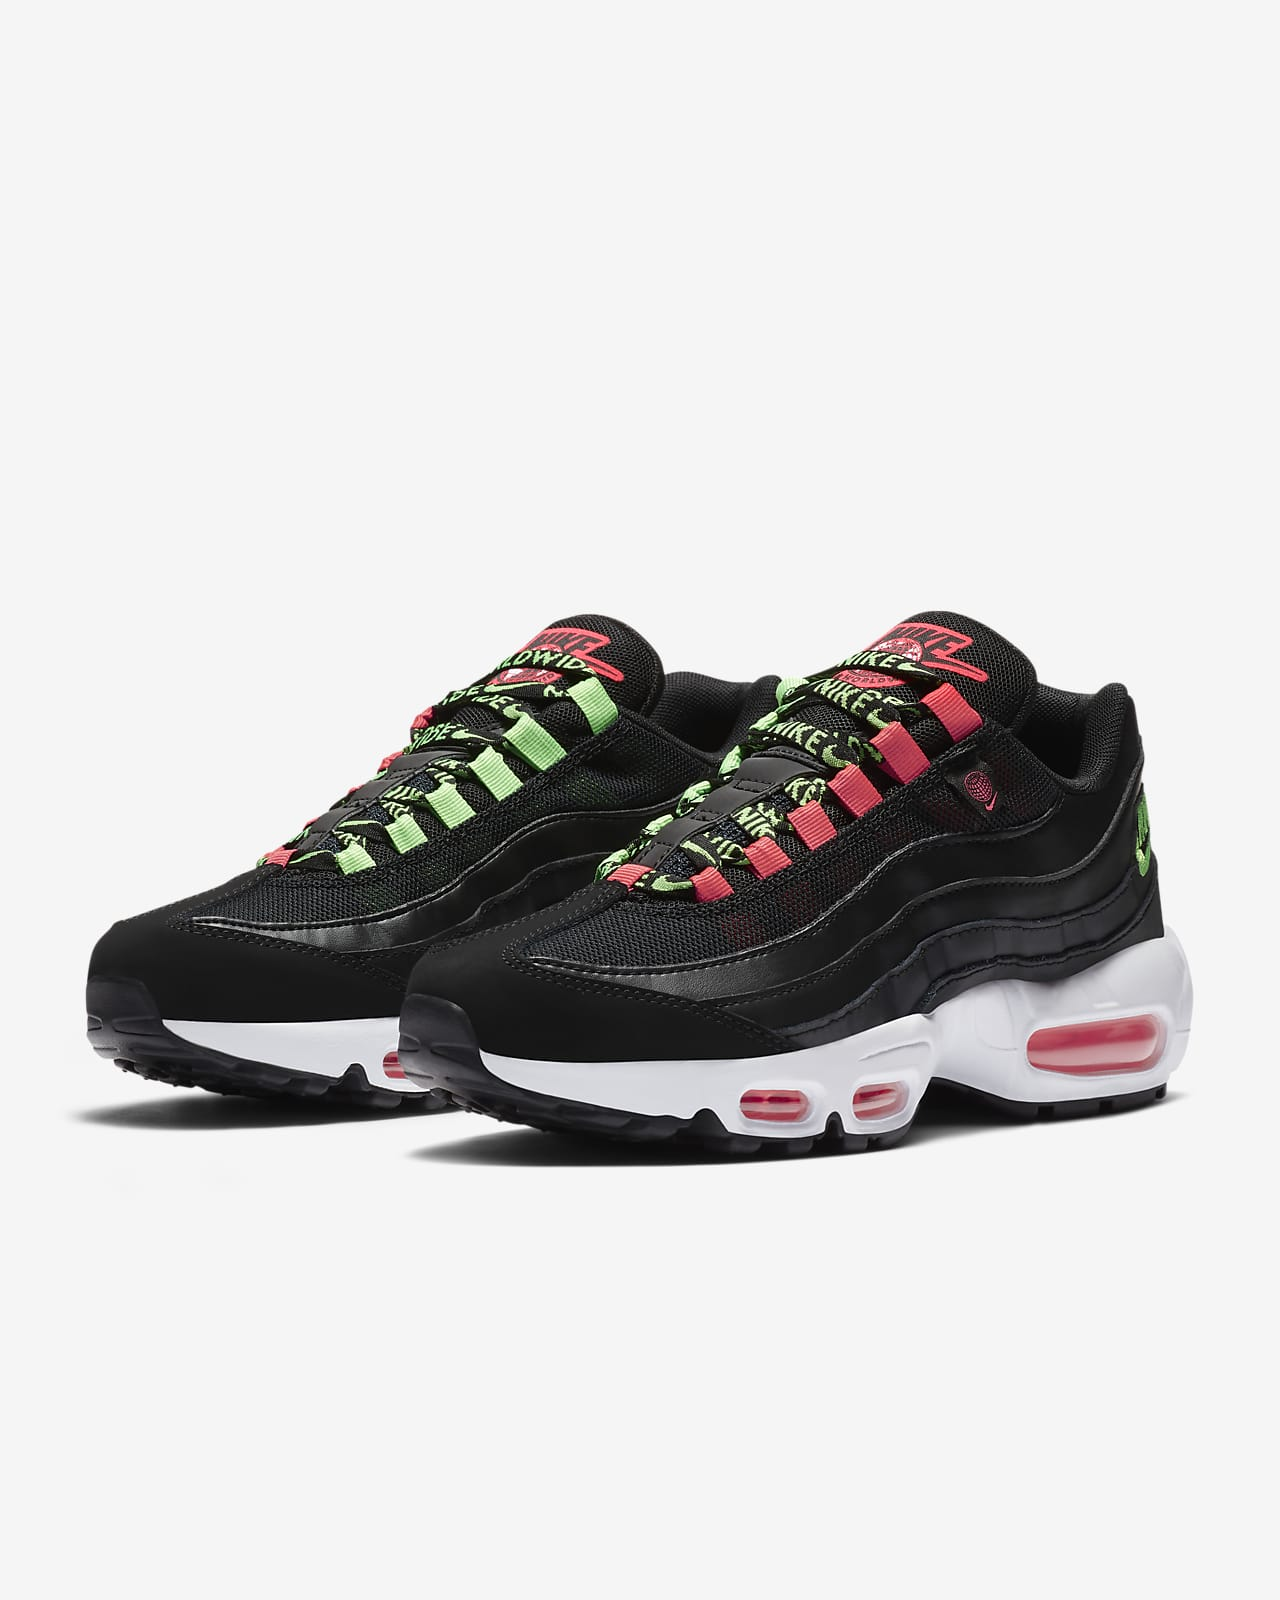 W Nike Air Max 95 SE Sneaker.no